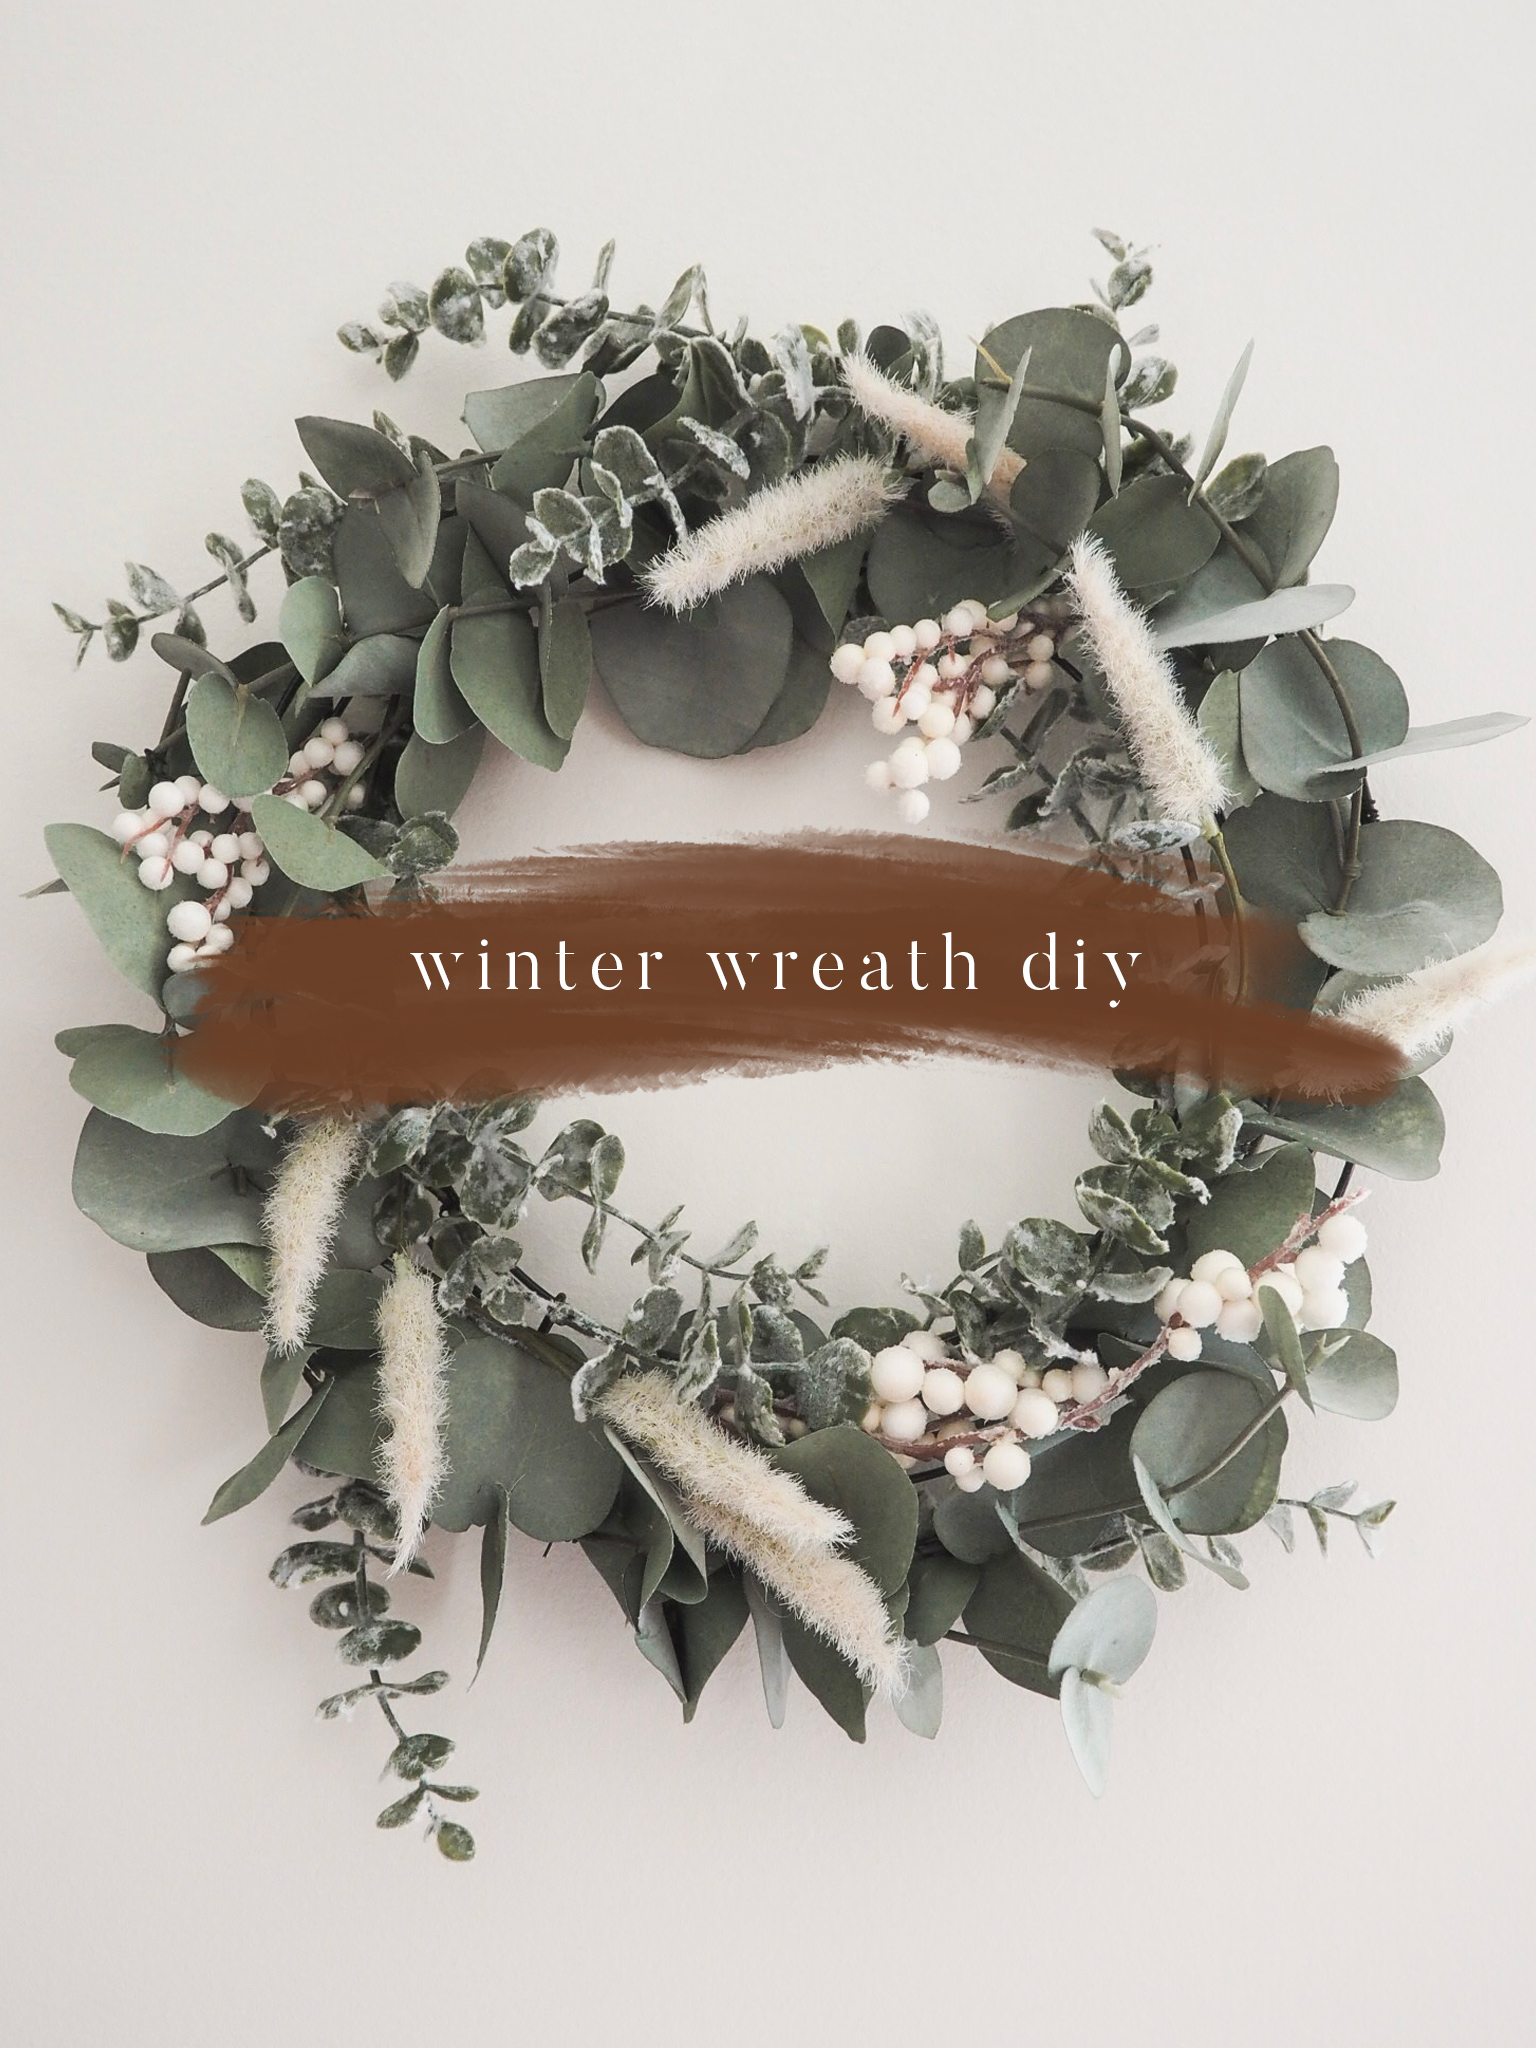 main pic winter wreath diy.jpg